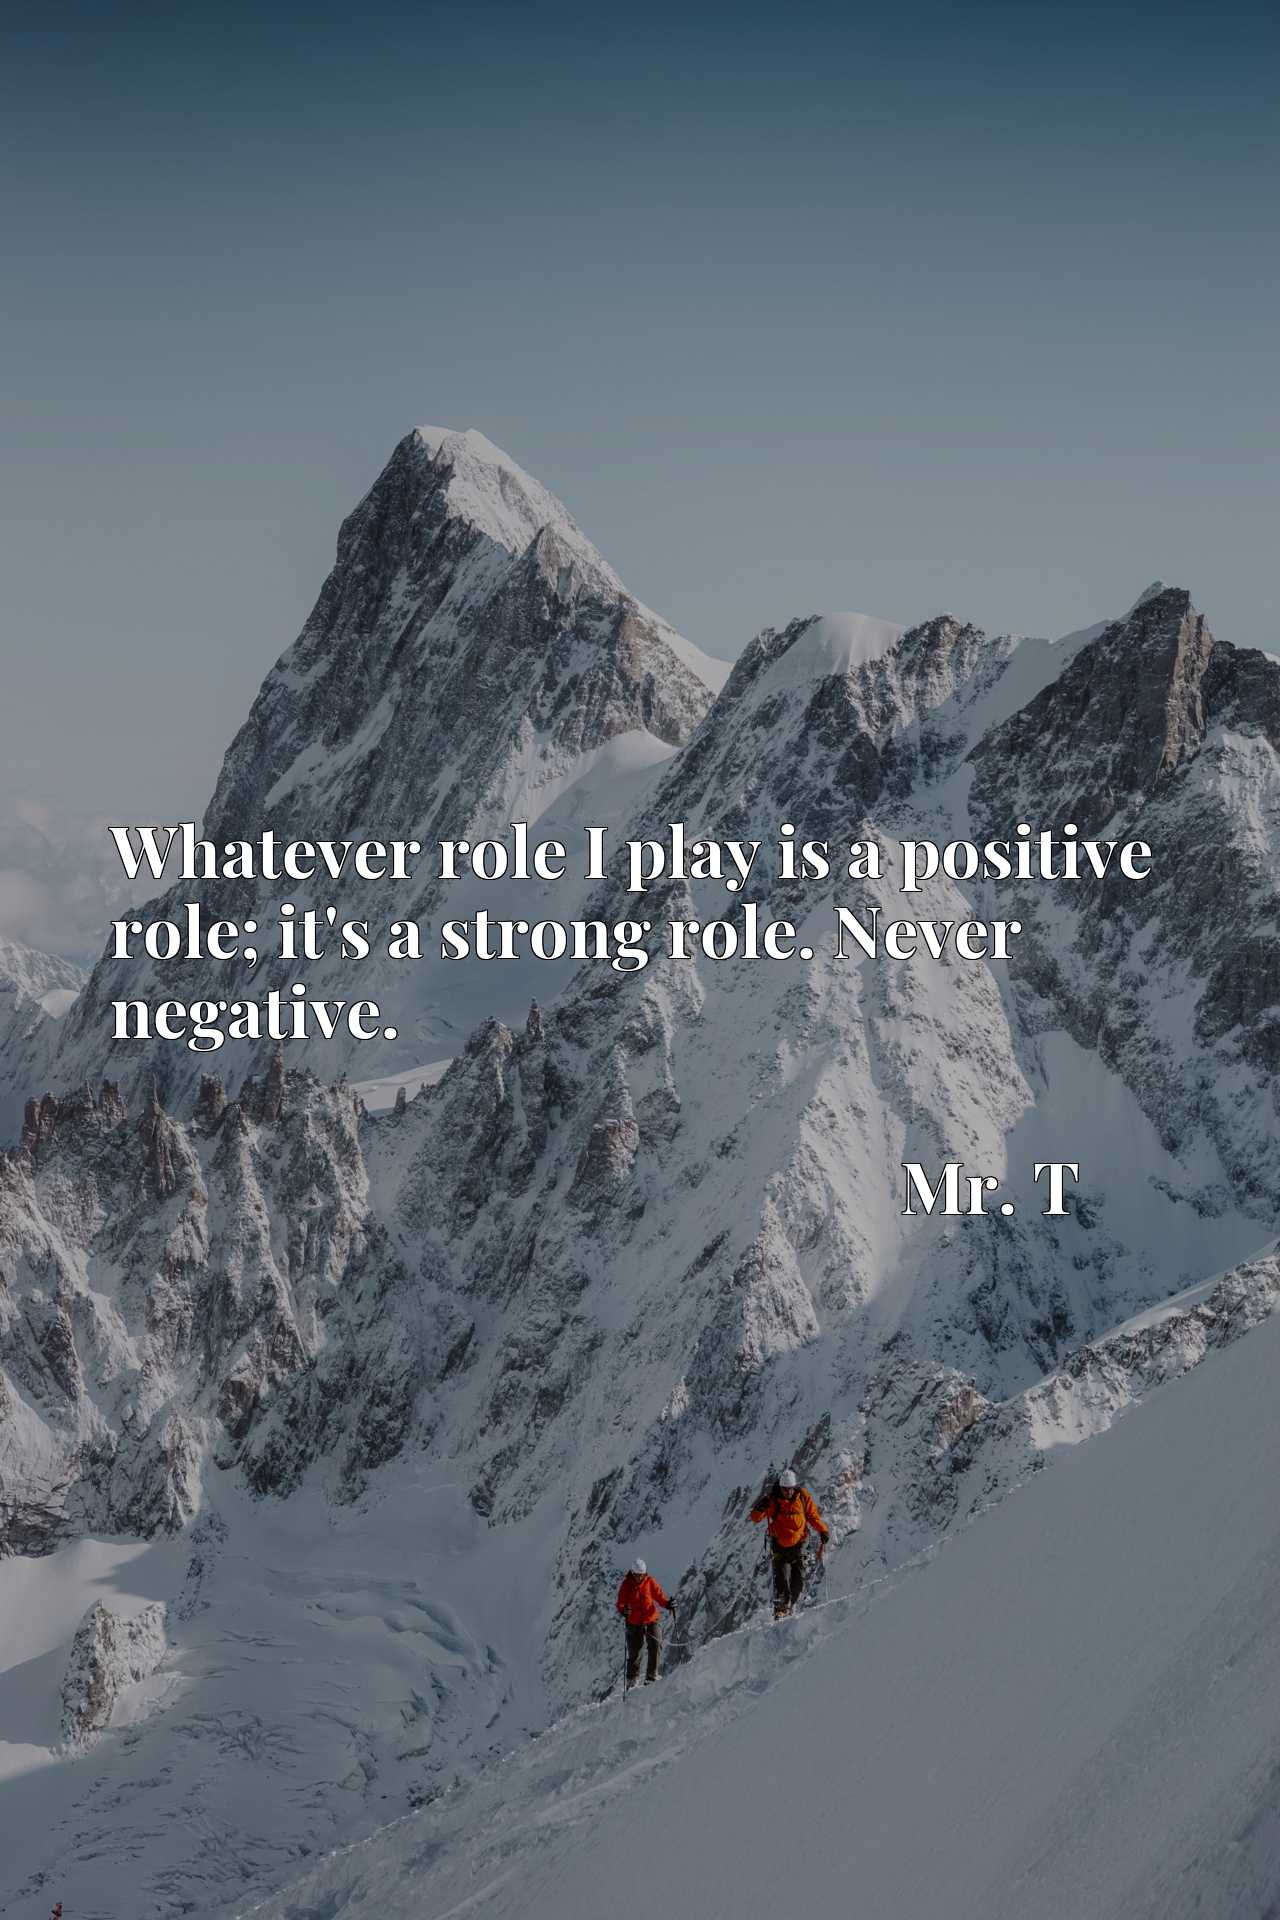 Whatever role I play is a positive role; it's a strong role. Never negative.